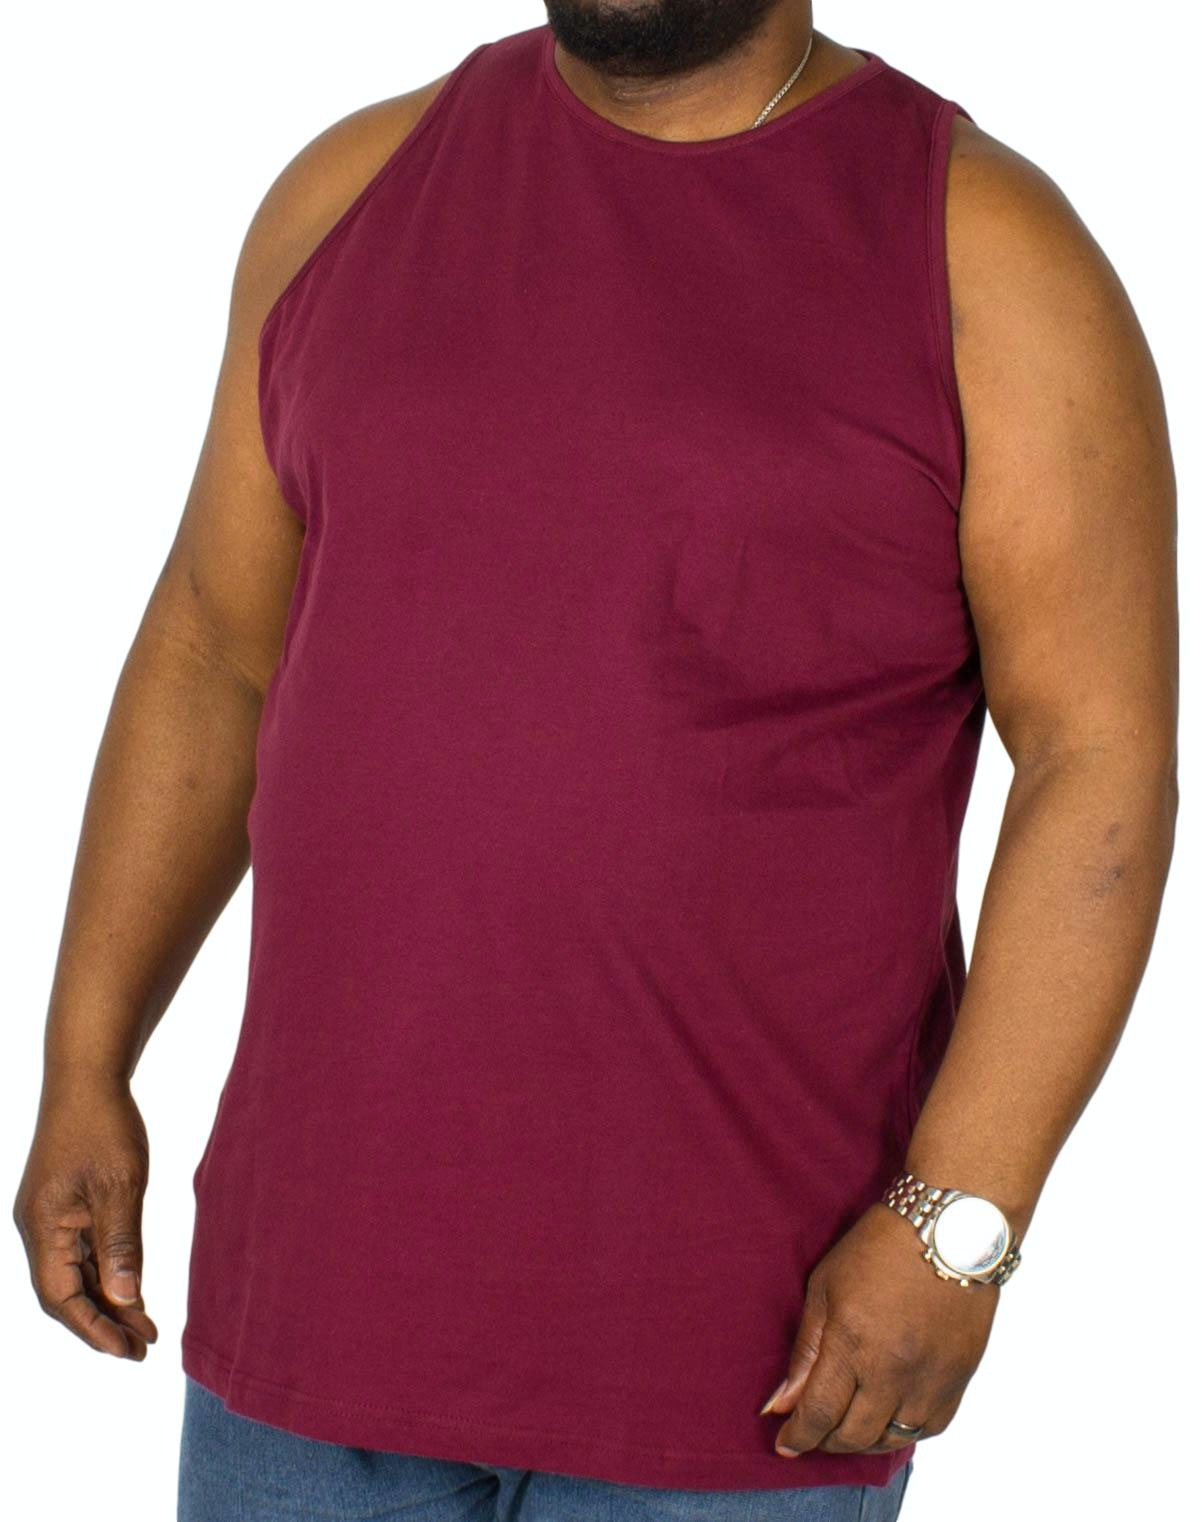 Bigdude Plain Vest Burgundy Tall